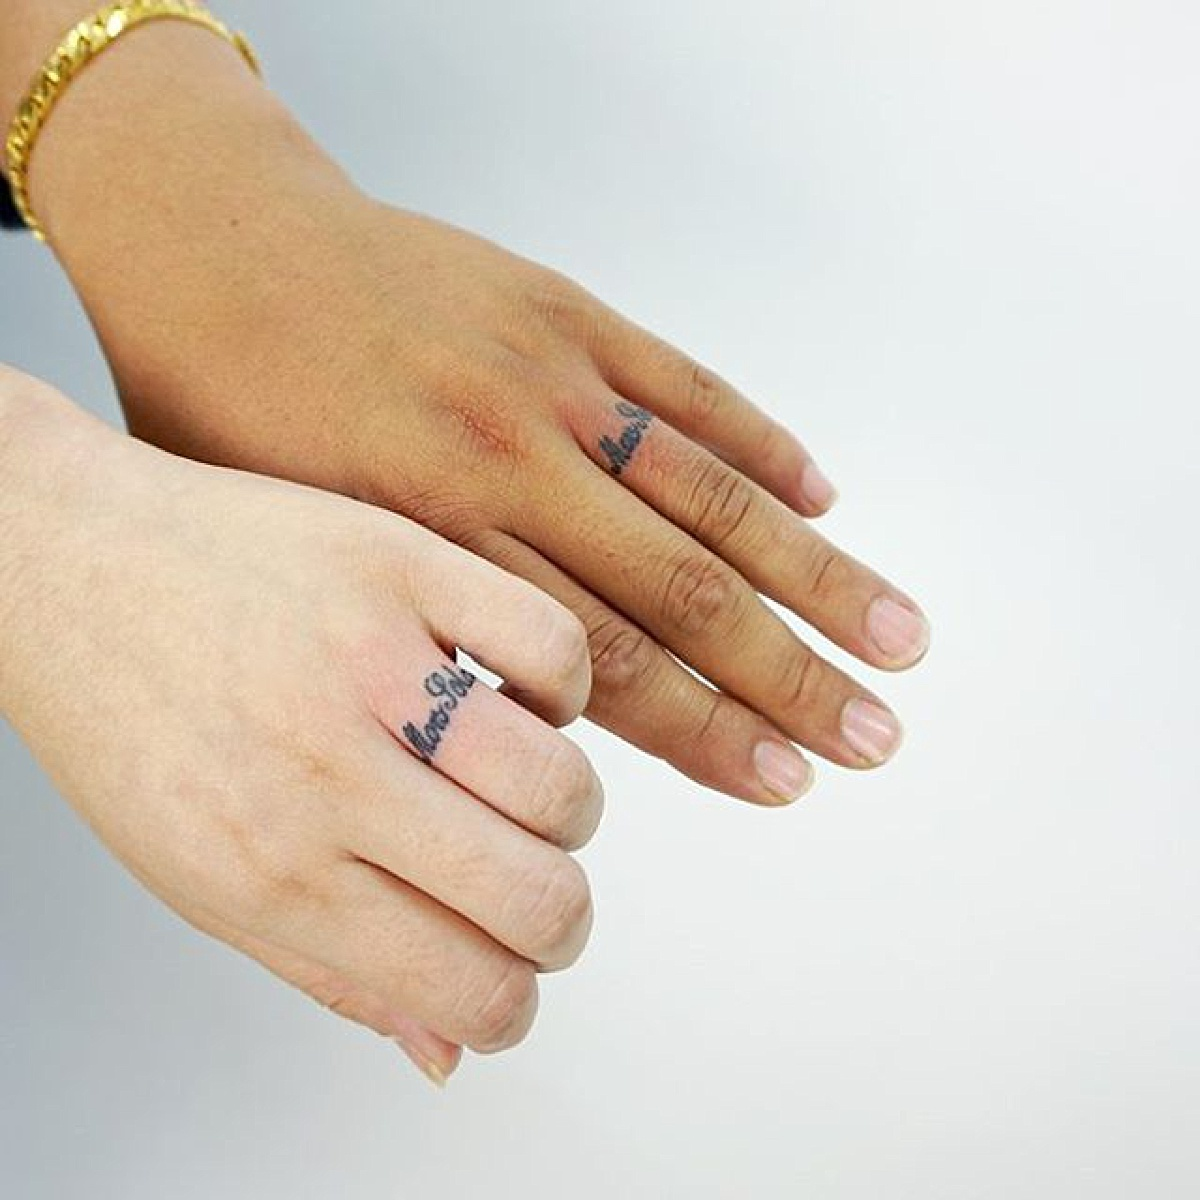 42 Wedding Ring Tattoos That Will Only Appeal To The Most Amazing Of ...